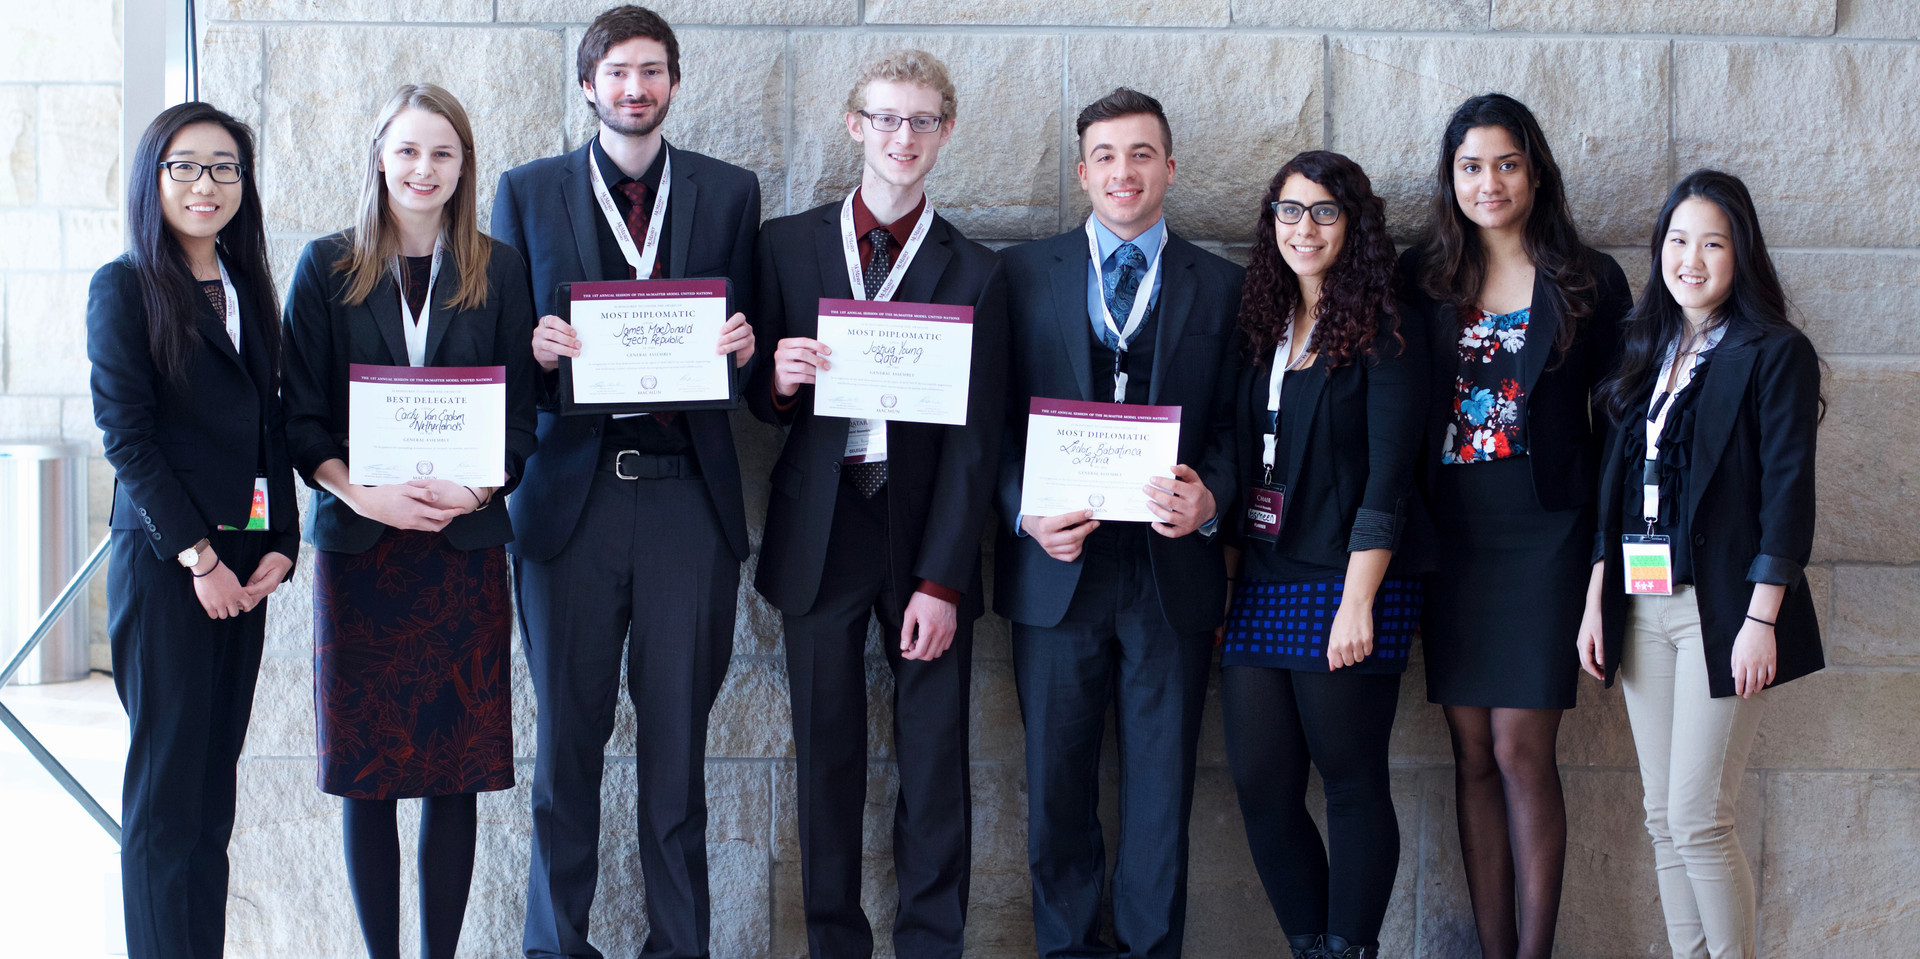 The award winners of the General Assembly at MACMUN 2016